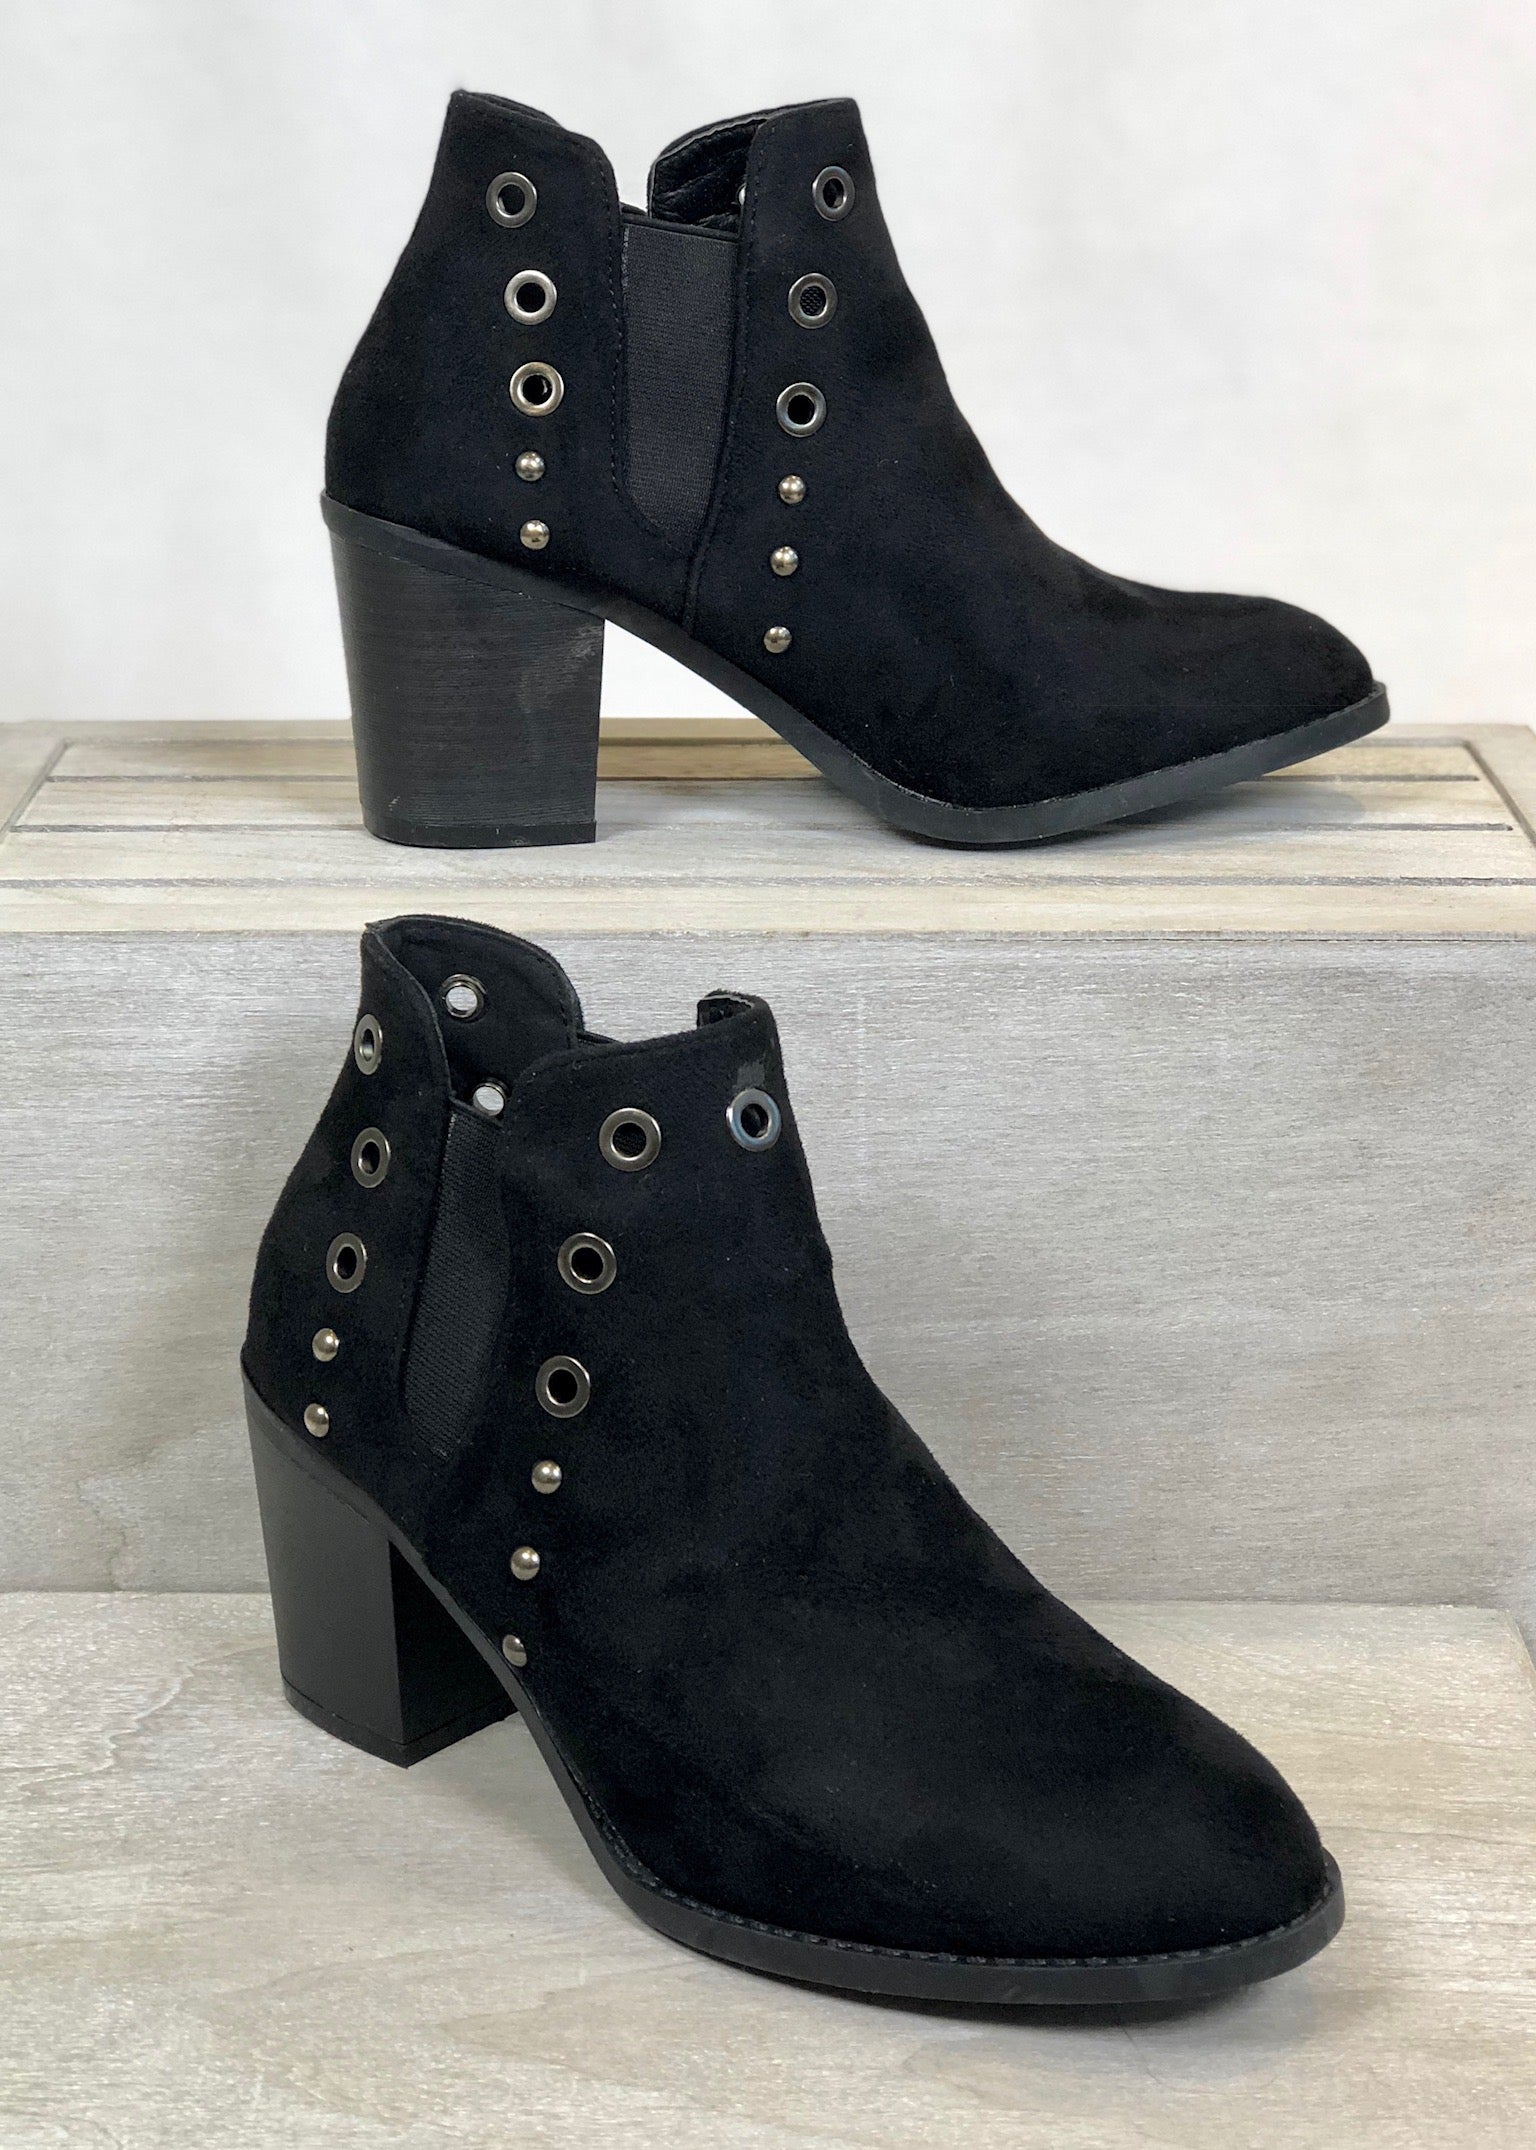 Sydney Grommet Booties - Black FINAL SALE